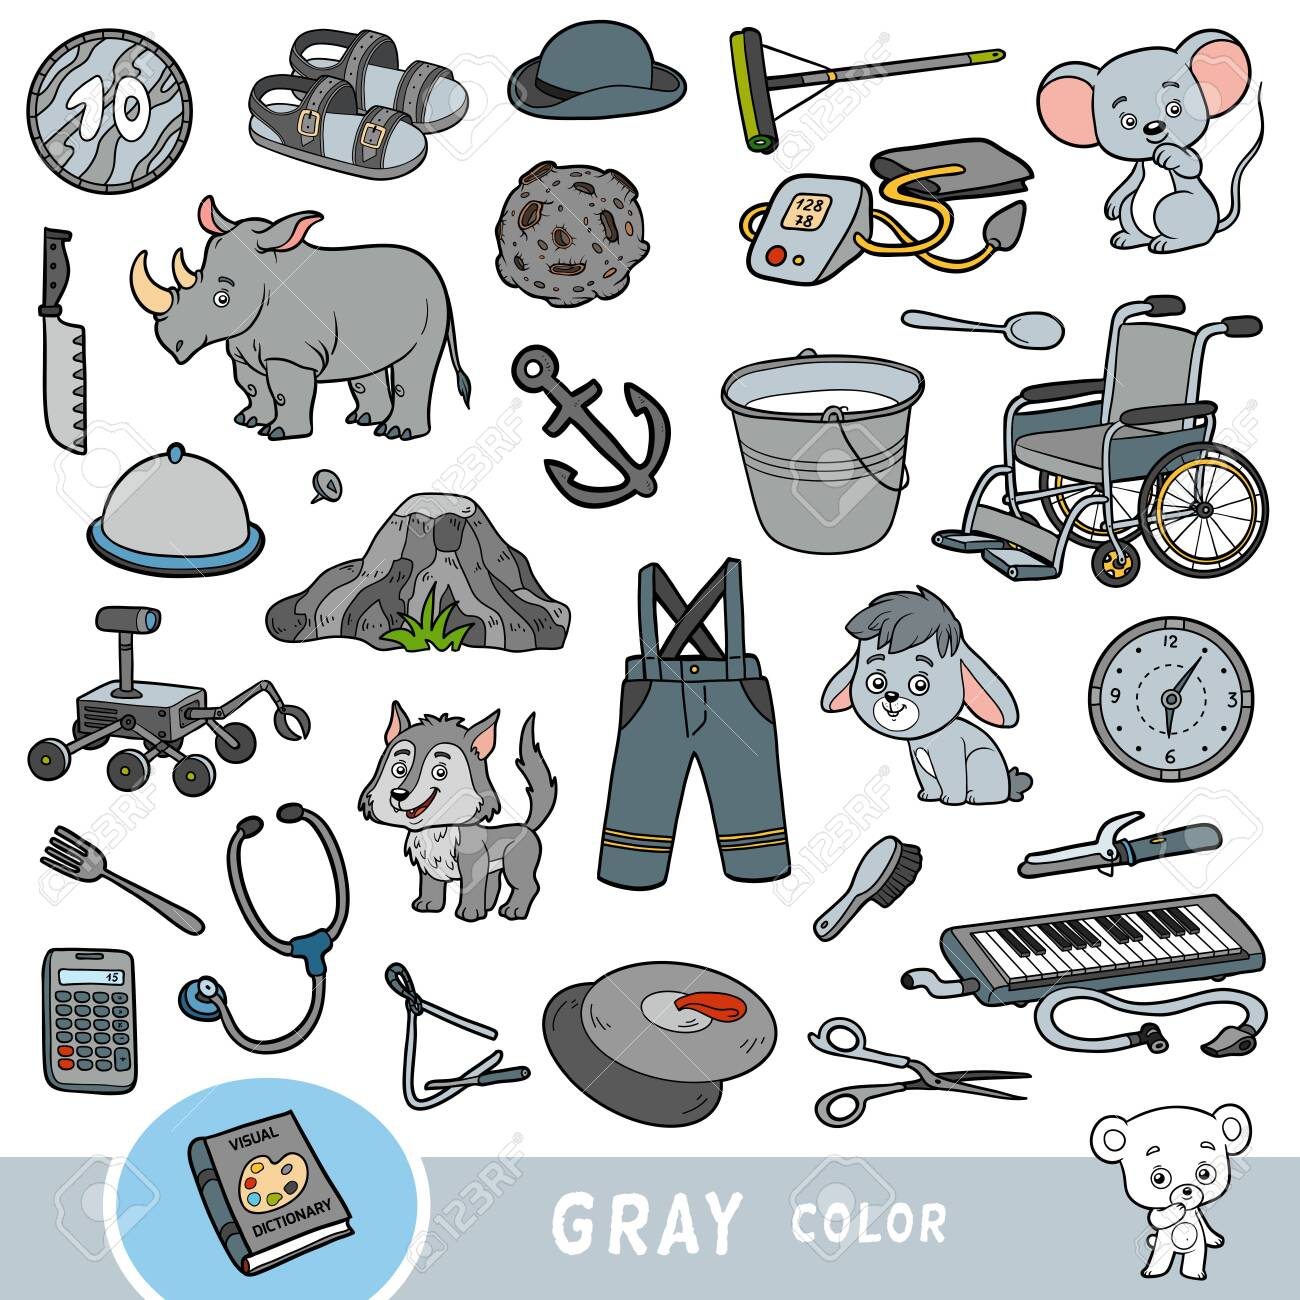 Colorful set of gray color objects. Visual dictionary for children about the basic colors. Cartoon images to learning in kindergarten and preschool - 136781324